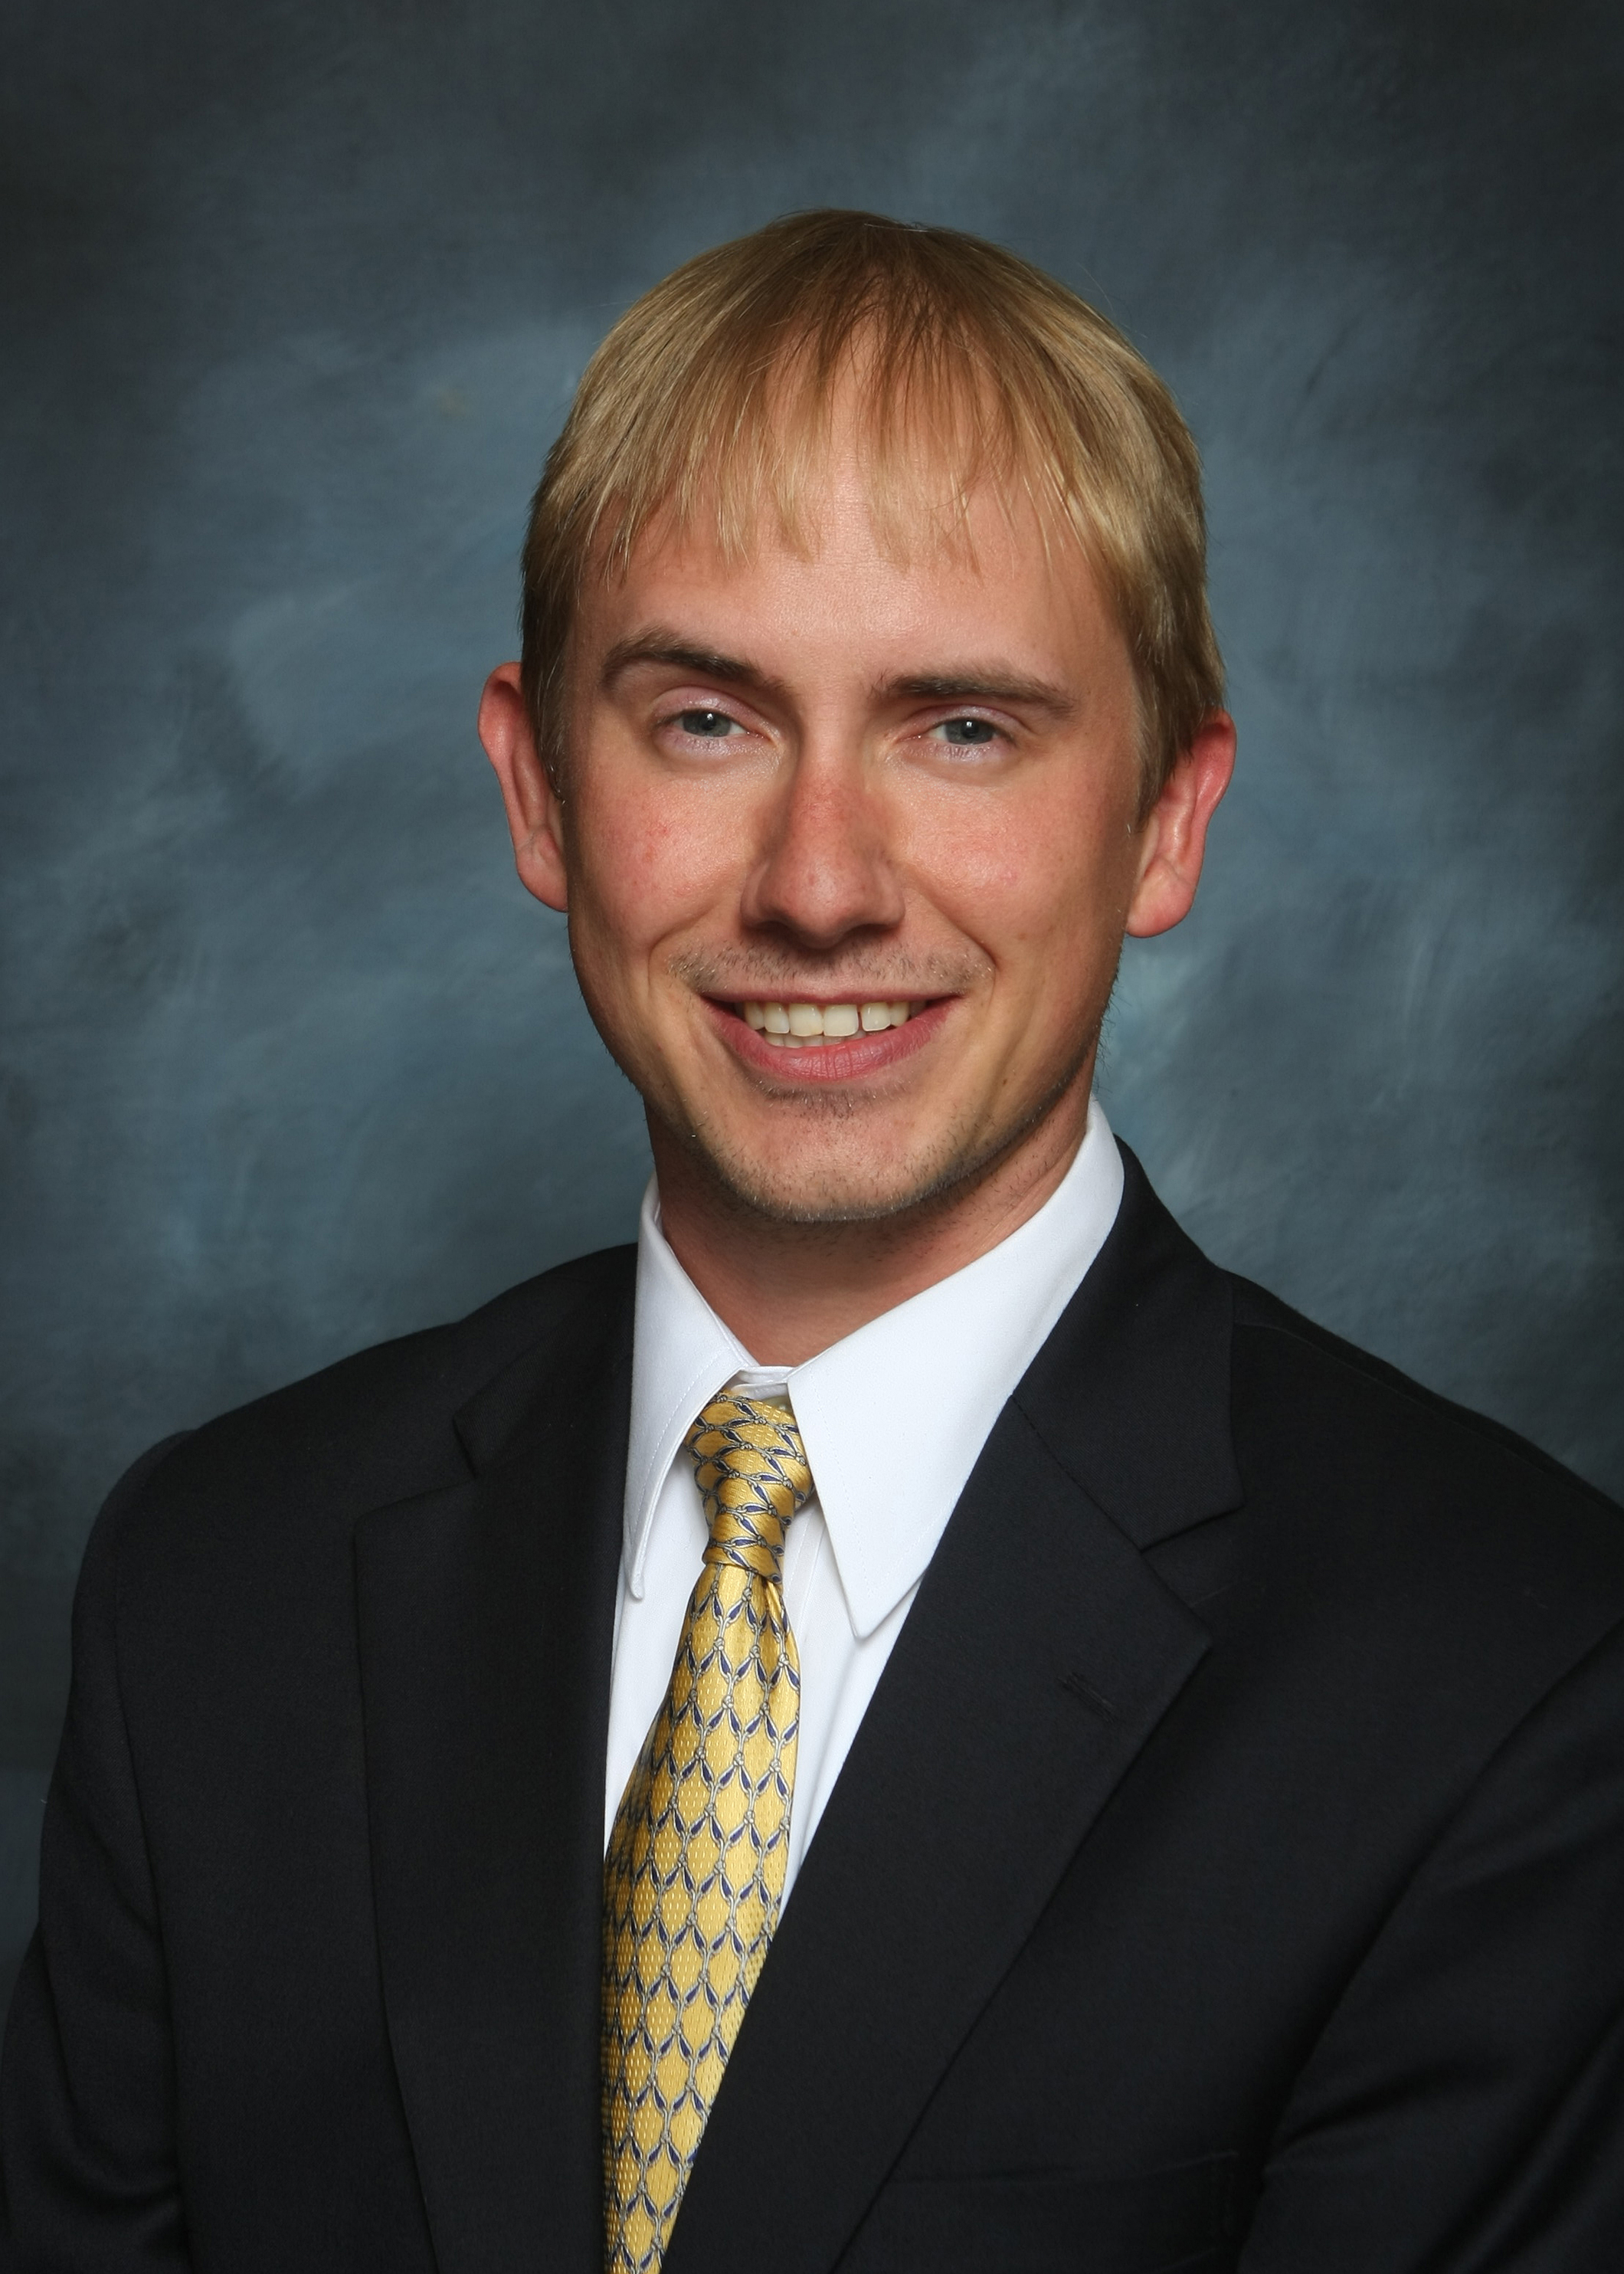 James Behne, financial advisor Mascoutah IL